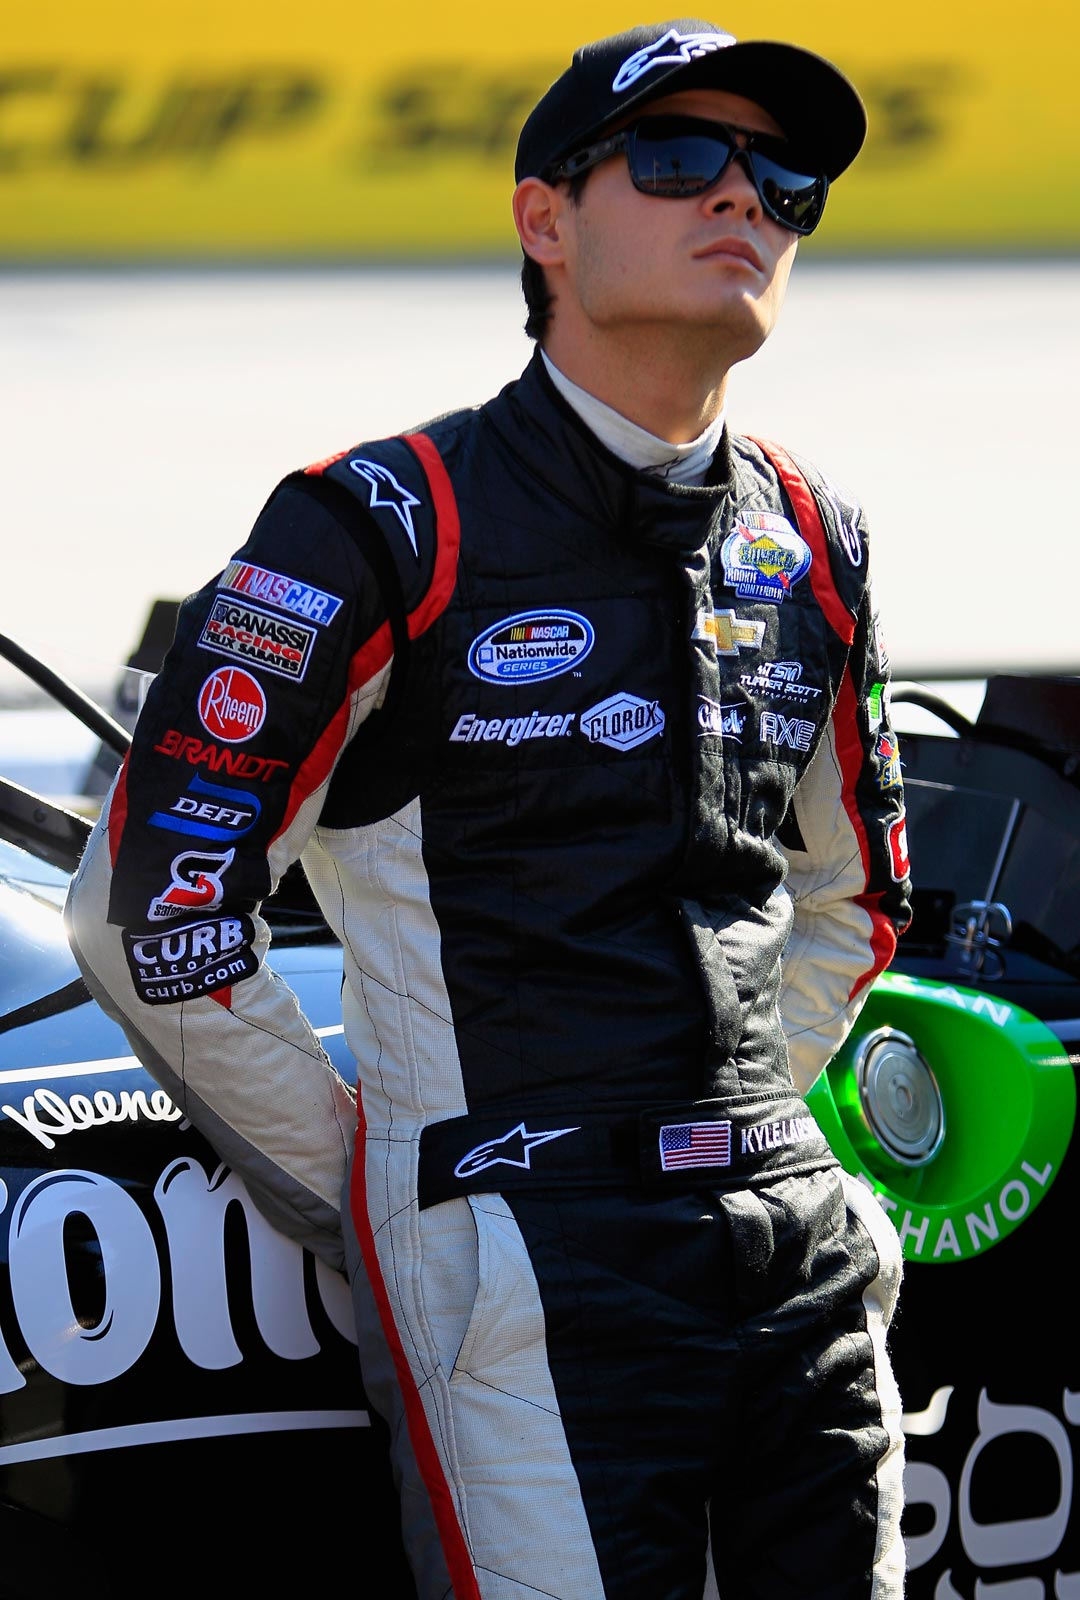 kyle-larson-nascar-bristol-march-2013